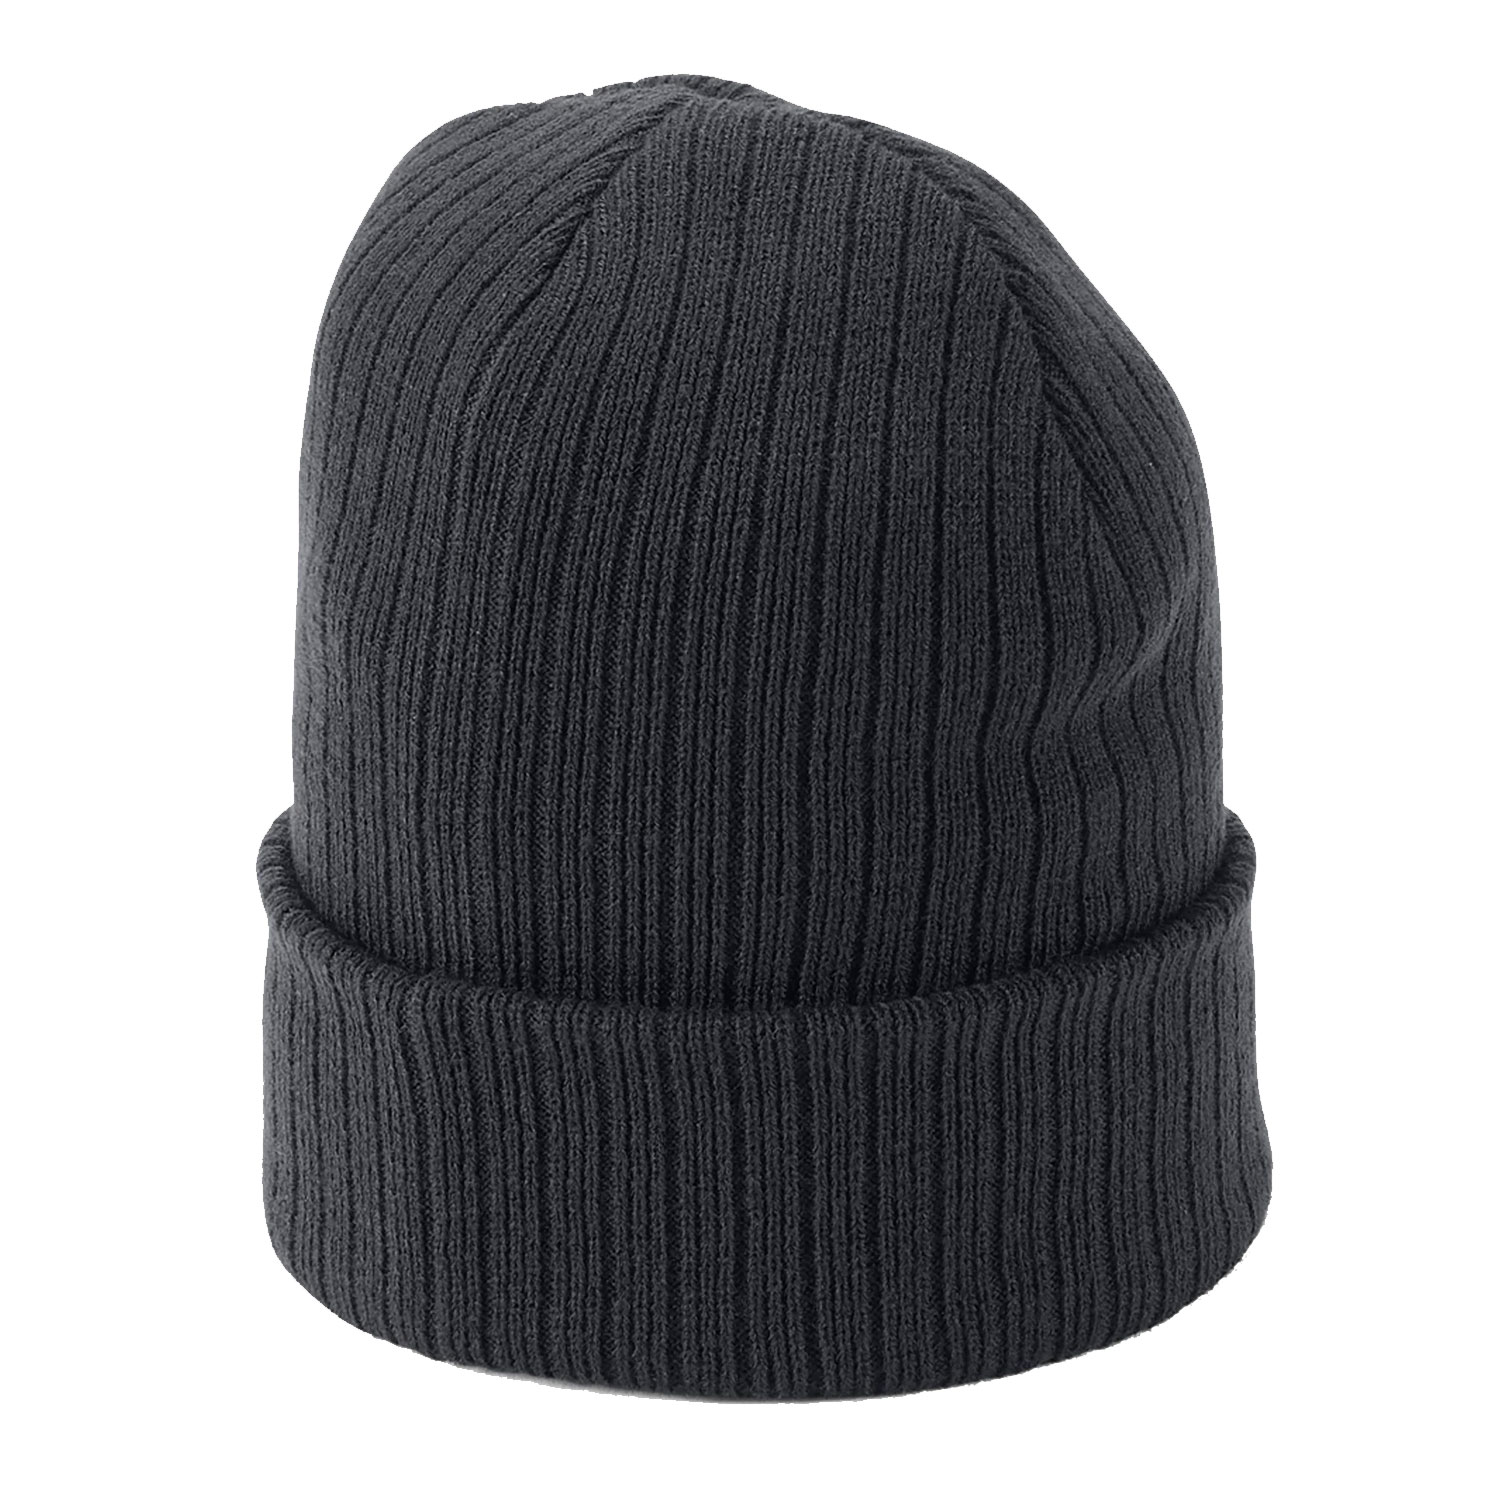 Under Armour Truckstop 2.0  Beanie - Black